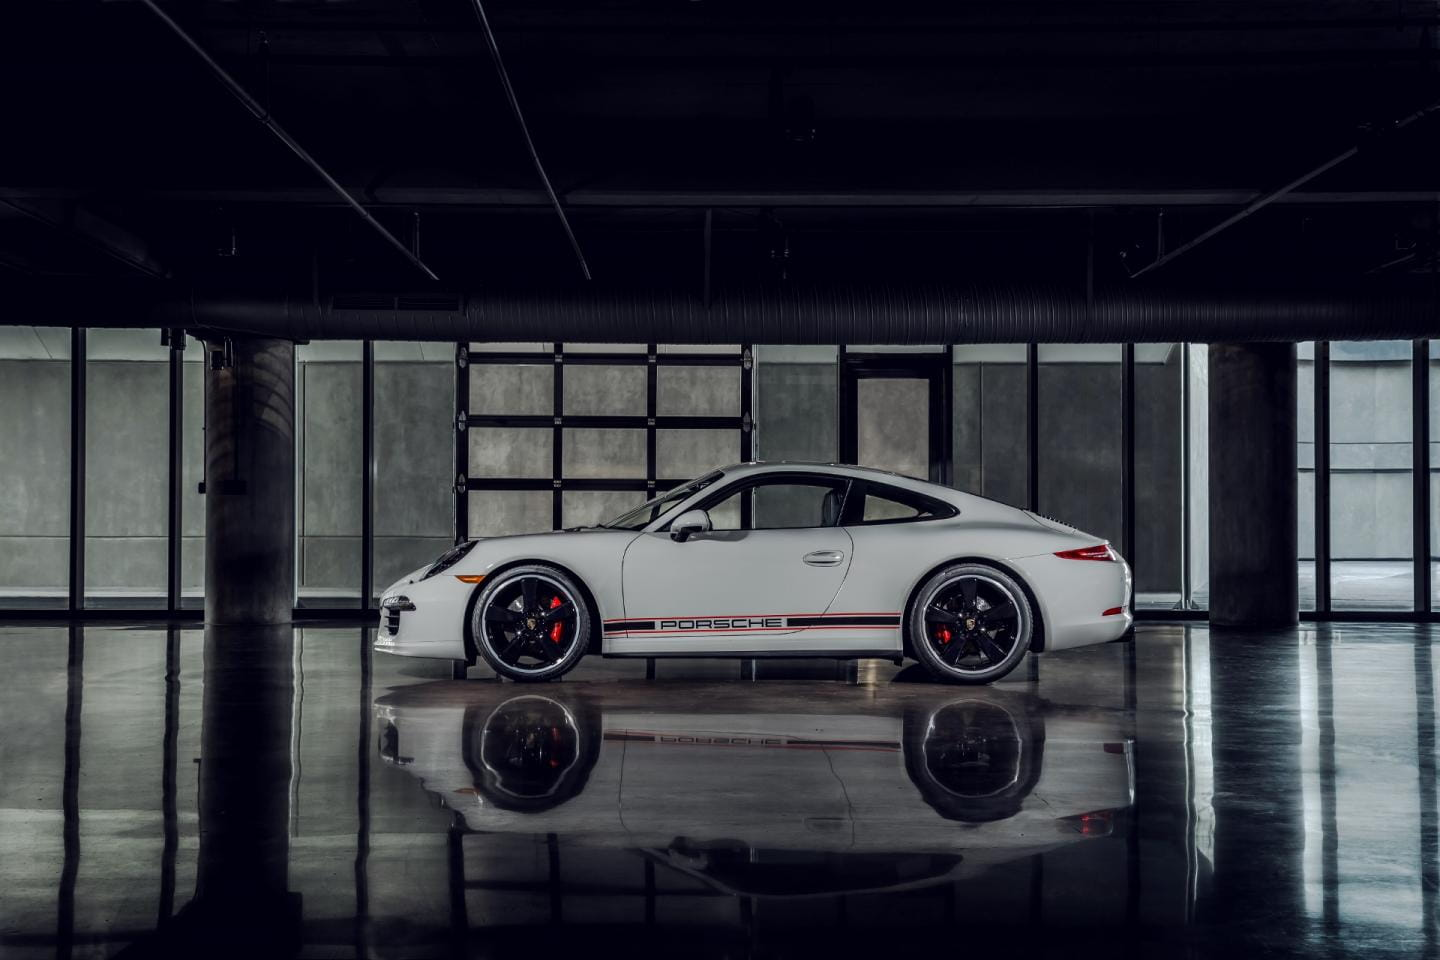 Porsche_911_Carerra_GTS_Rennsport_Reunion_Edition_DM_1